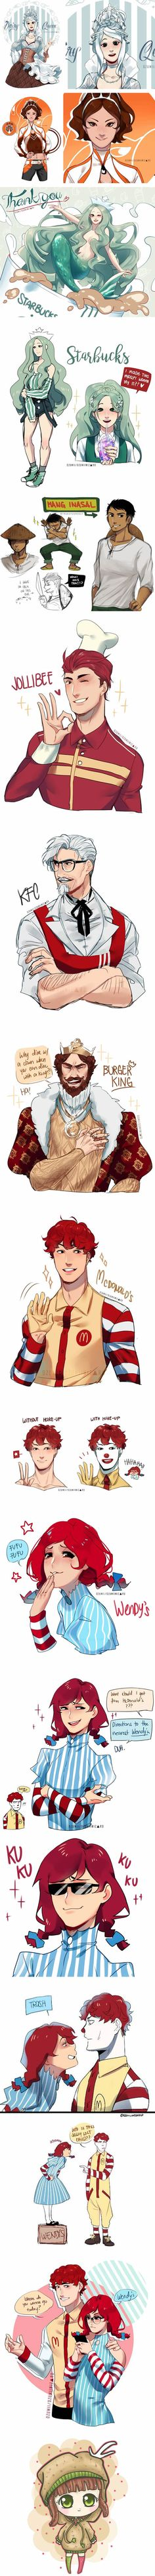 Artist Turns Fast Food Restaurant Chains Into Anime Characters